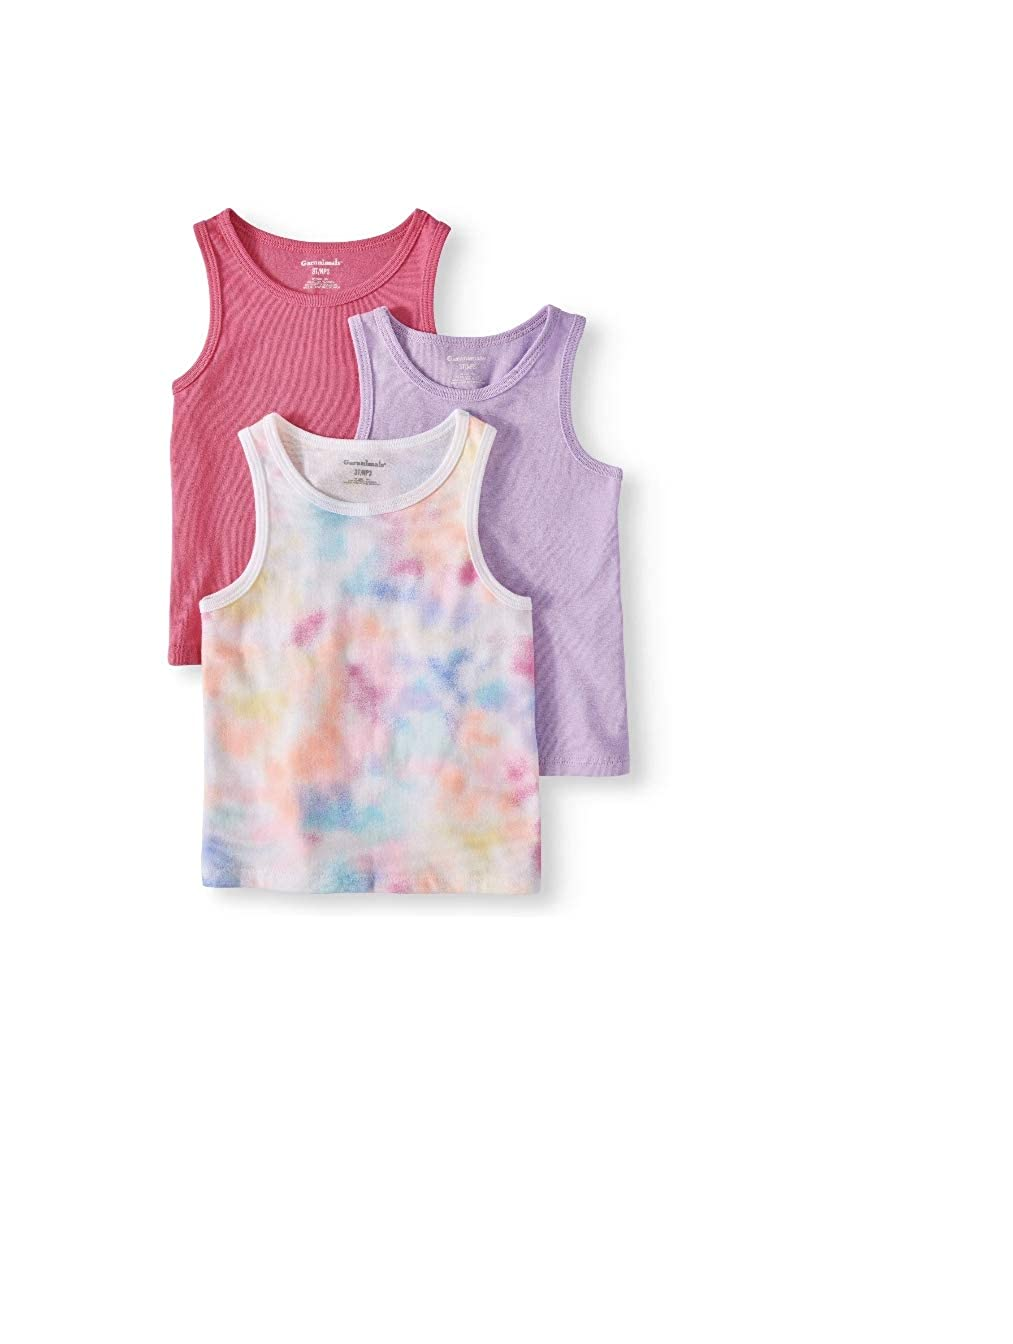 bda382fbc8700 Amazon.com: Garanimals Toddler Girls Solid & Printed Tank Tops, 3PC ...